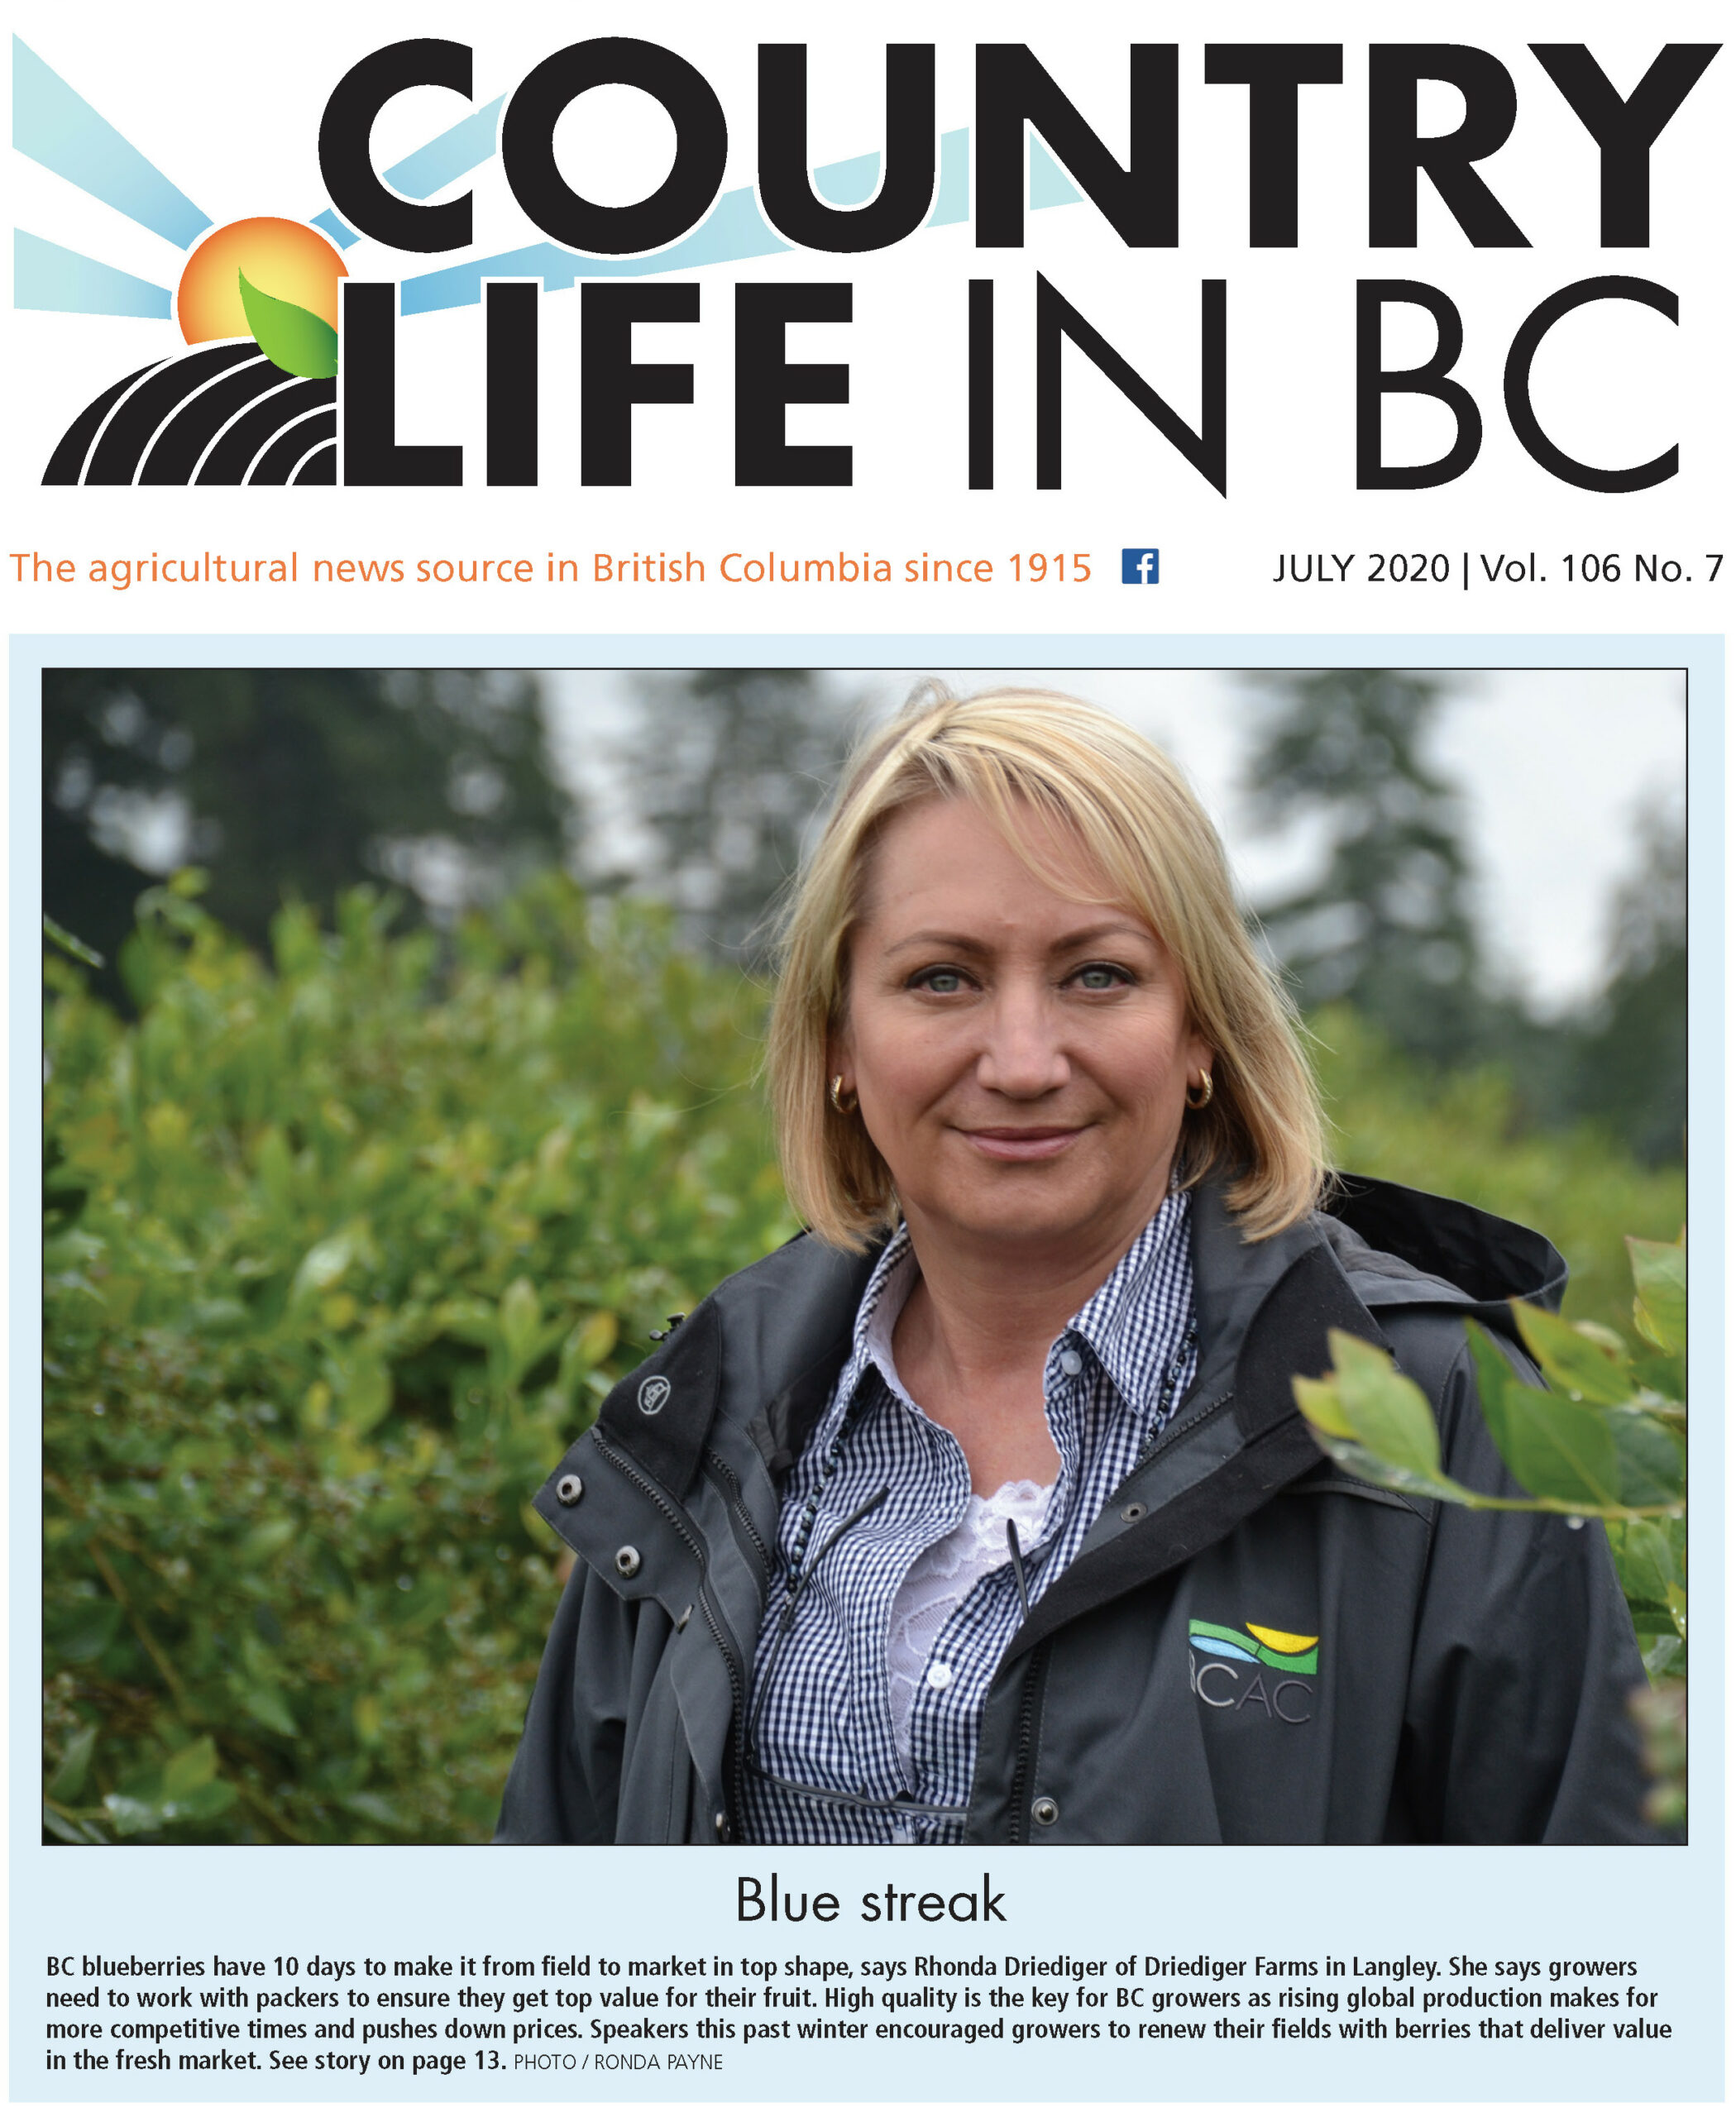 Country LIfe in BC 2020 July - cover p 1 detail